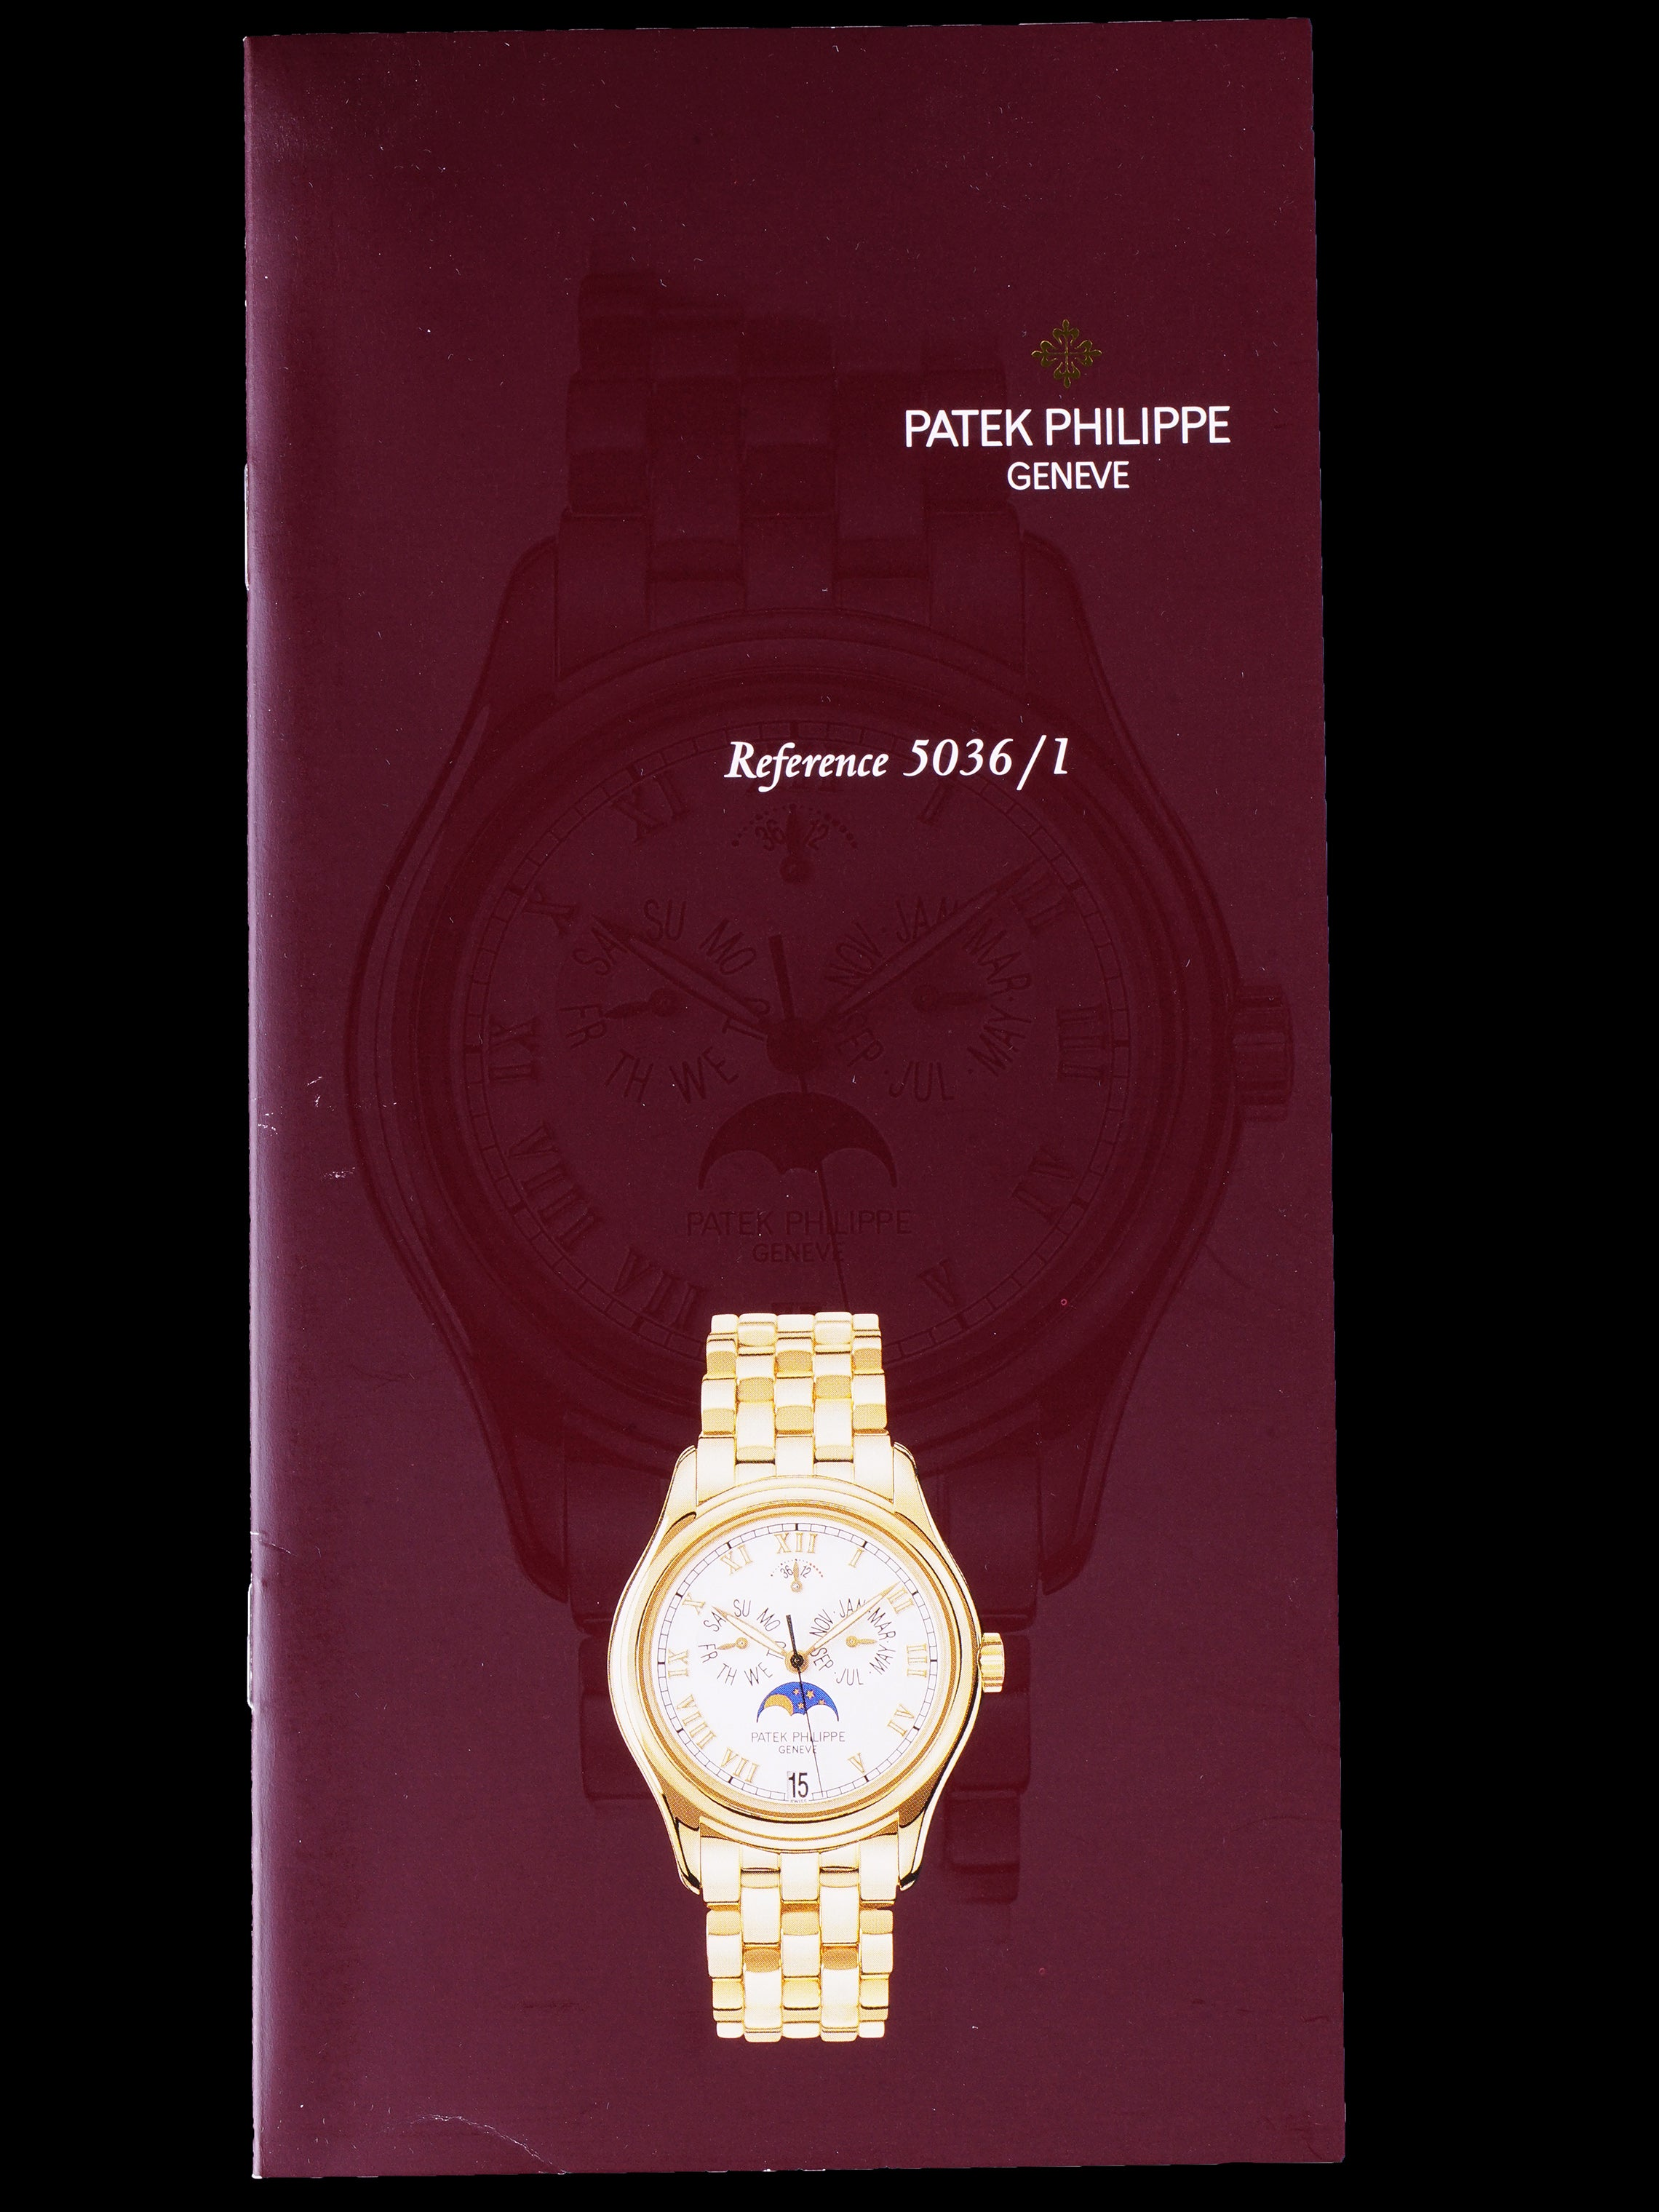 2002 Patek Philippe (Ref. 5036/1G) 18K WG W/ Box and Papers